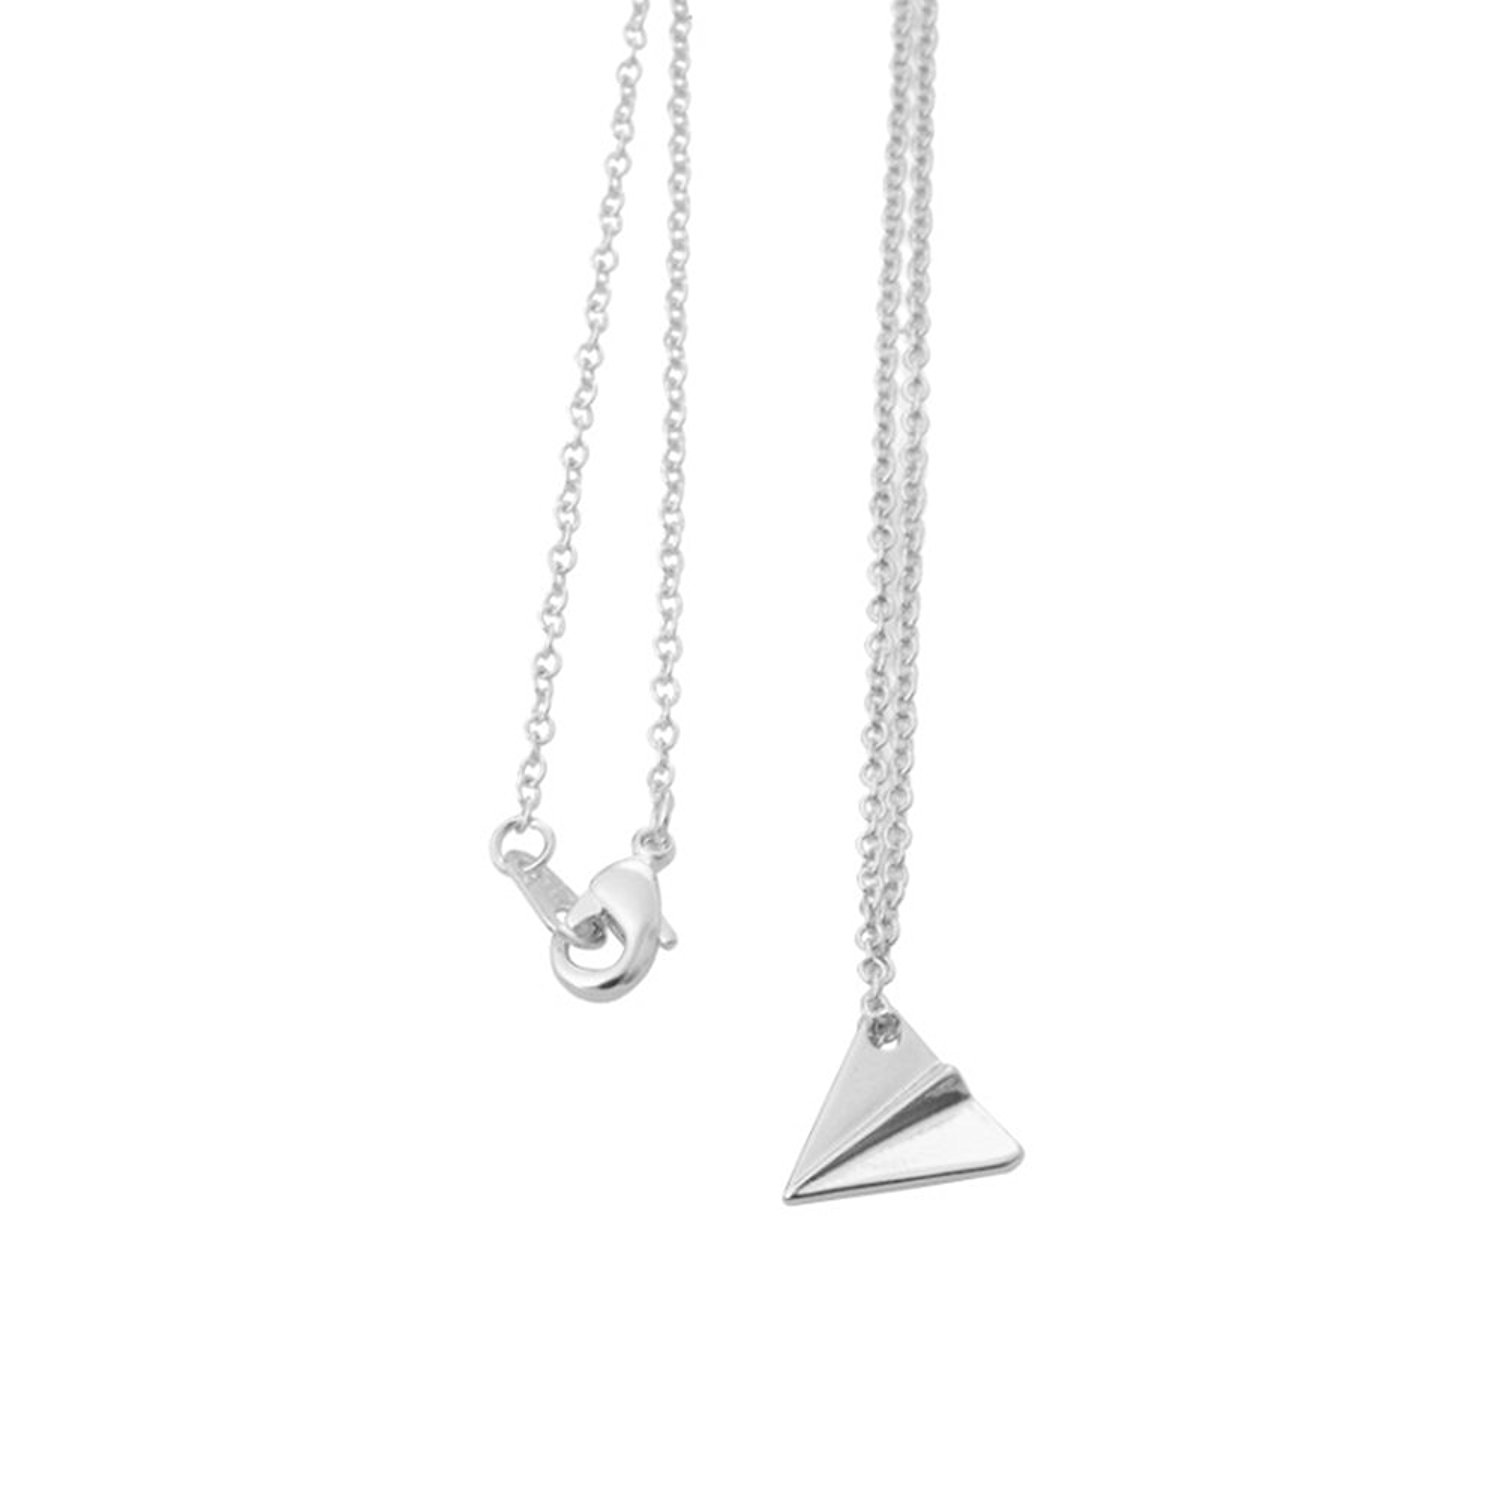 MUZHE Delicate Tiny Airplane Pendant Necklace - Simple Long Chain Paper Plane Necklace for Women Girls